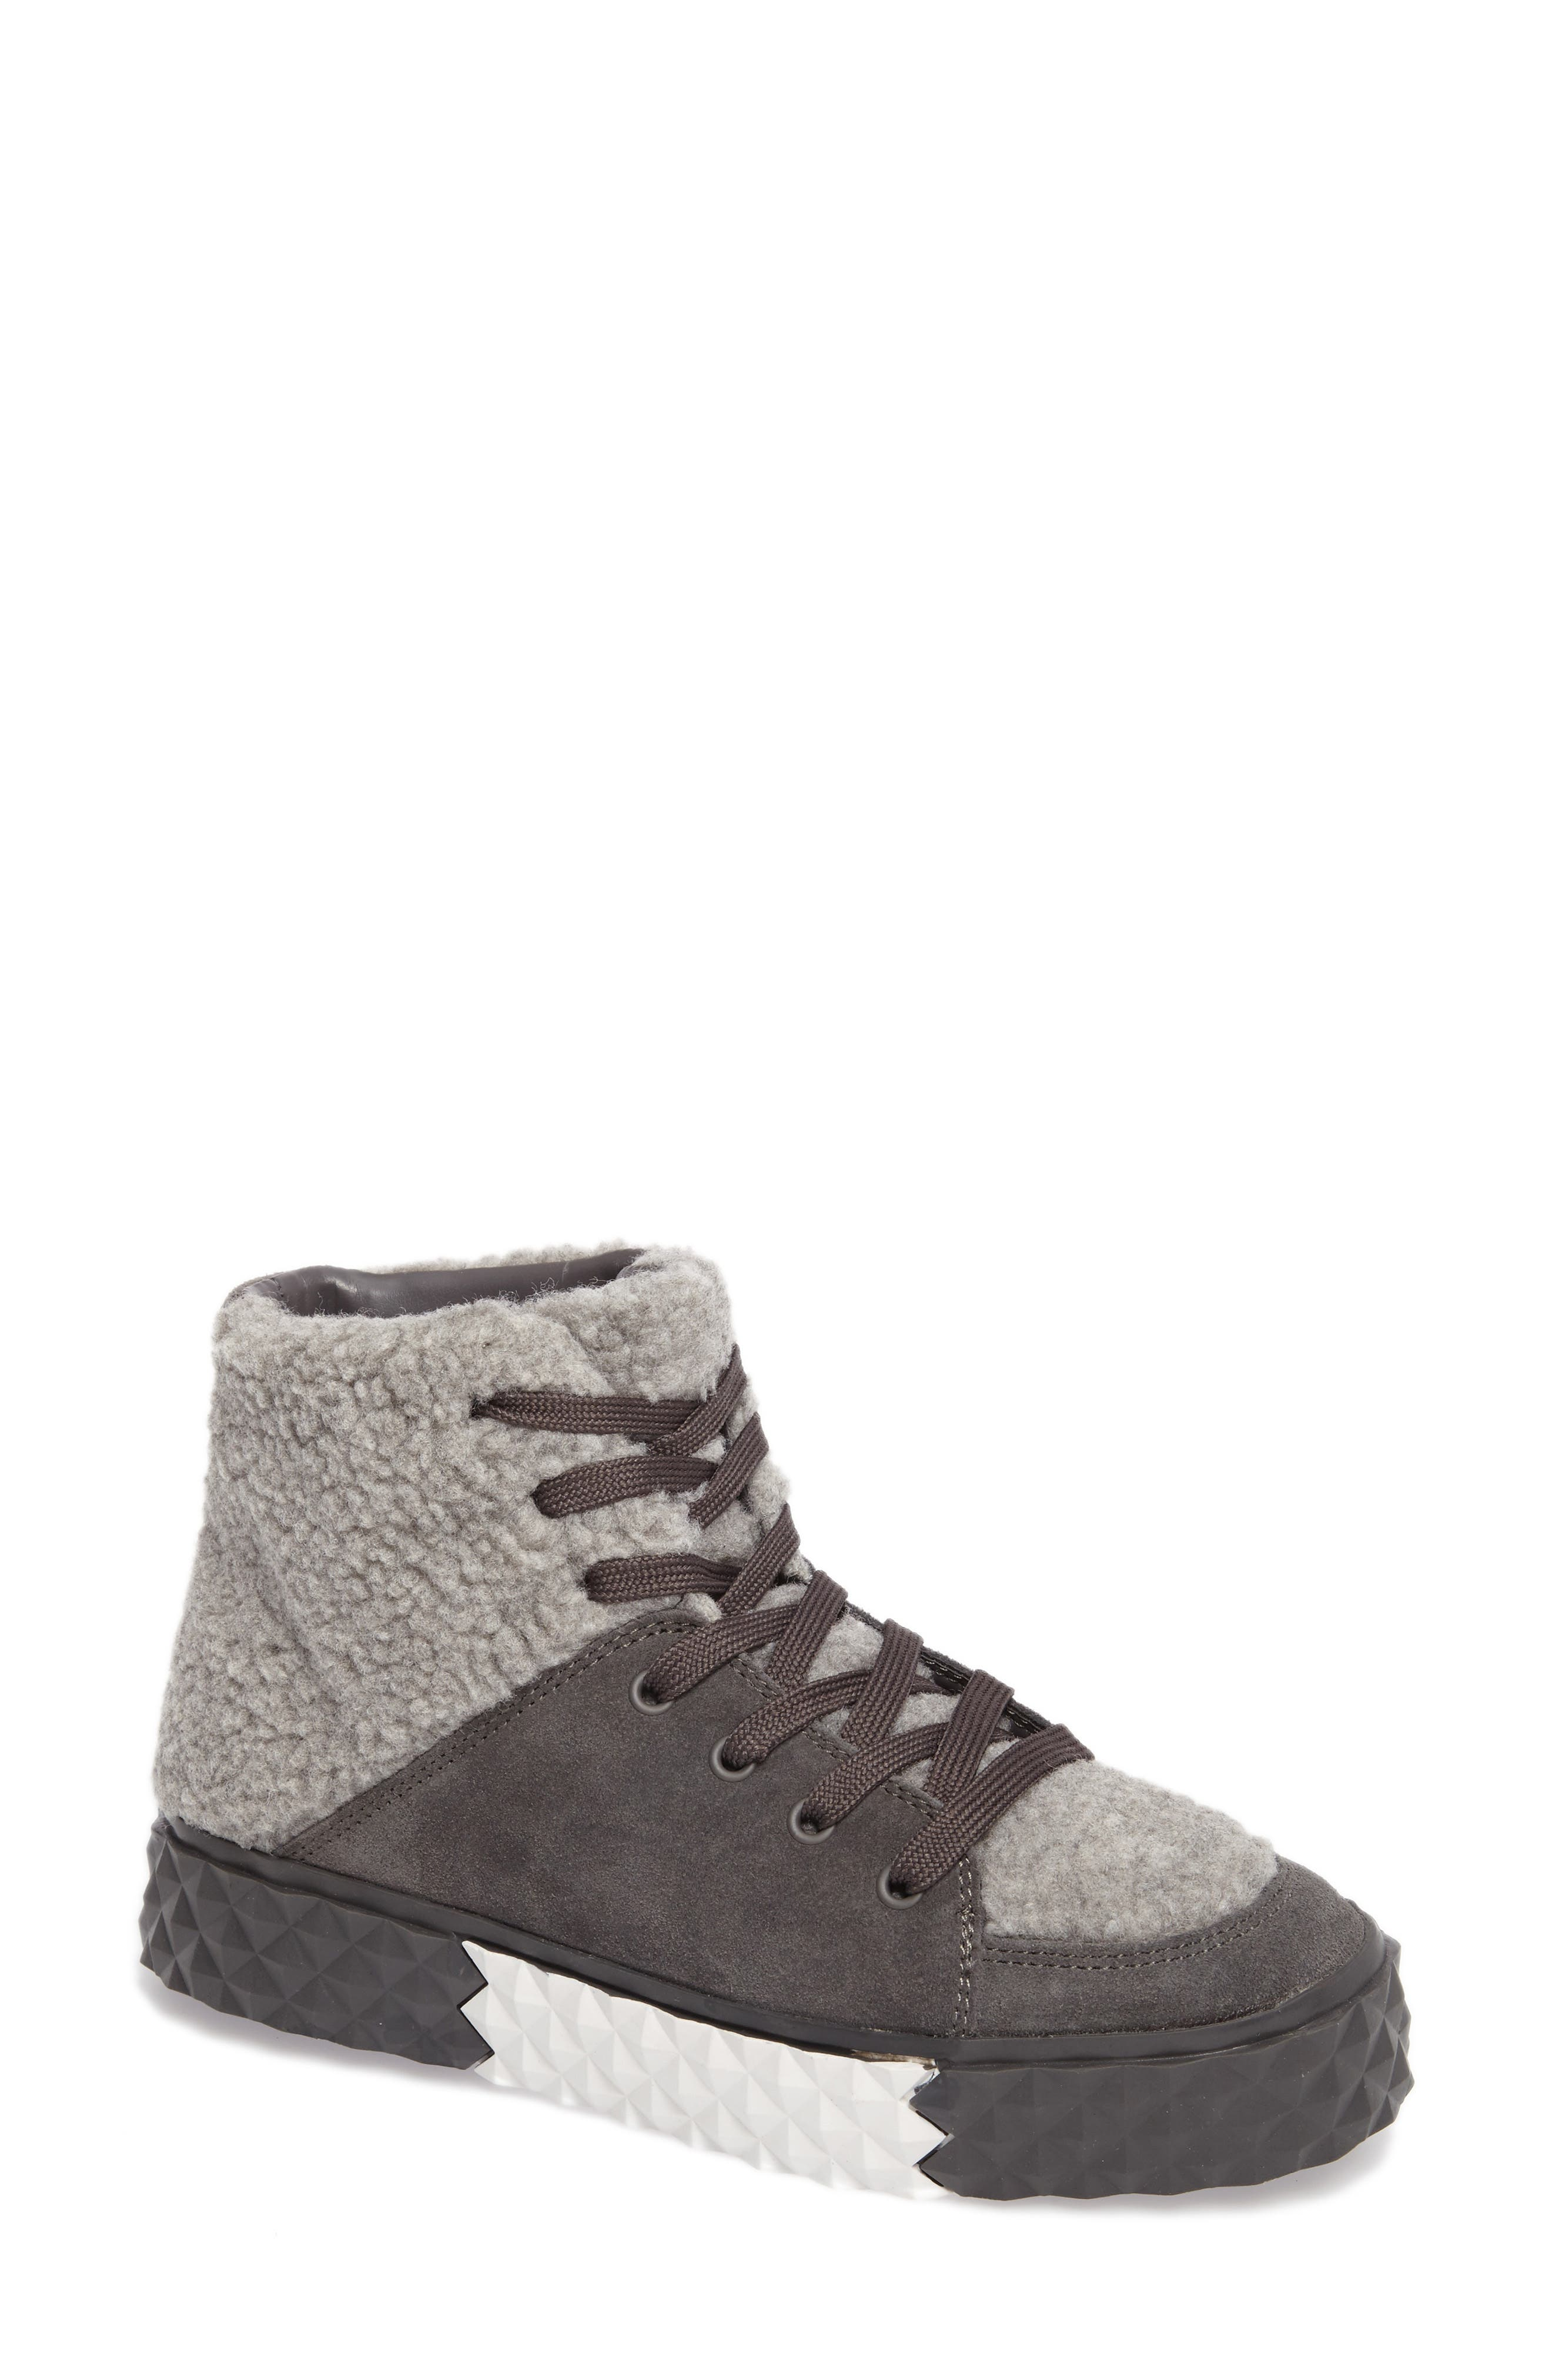 KENDALL + KYLIE Rebel Faux Shearling Sneaker (Women)